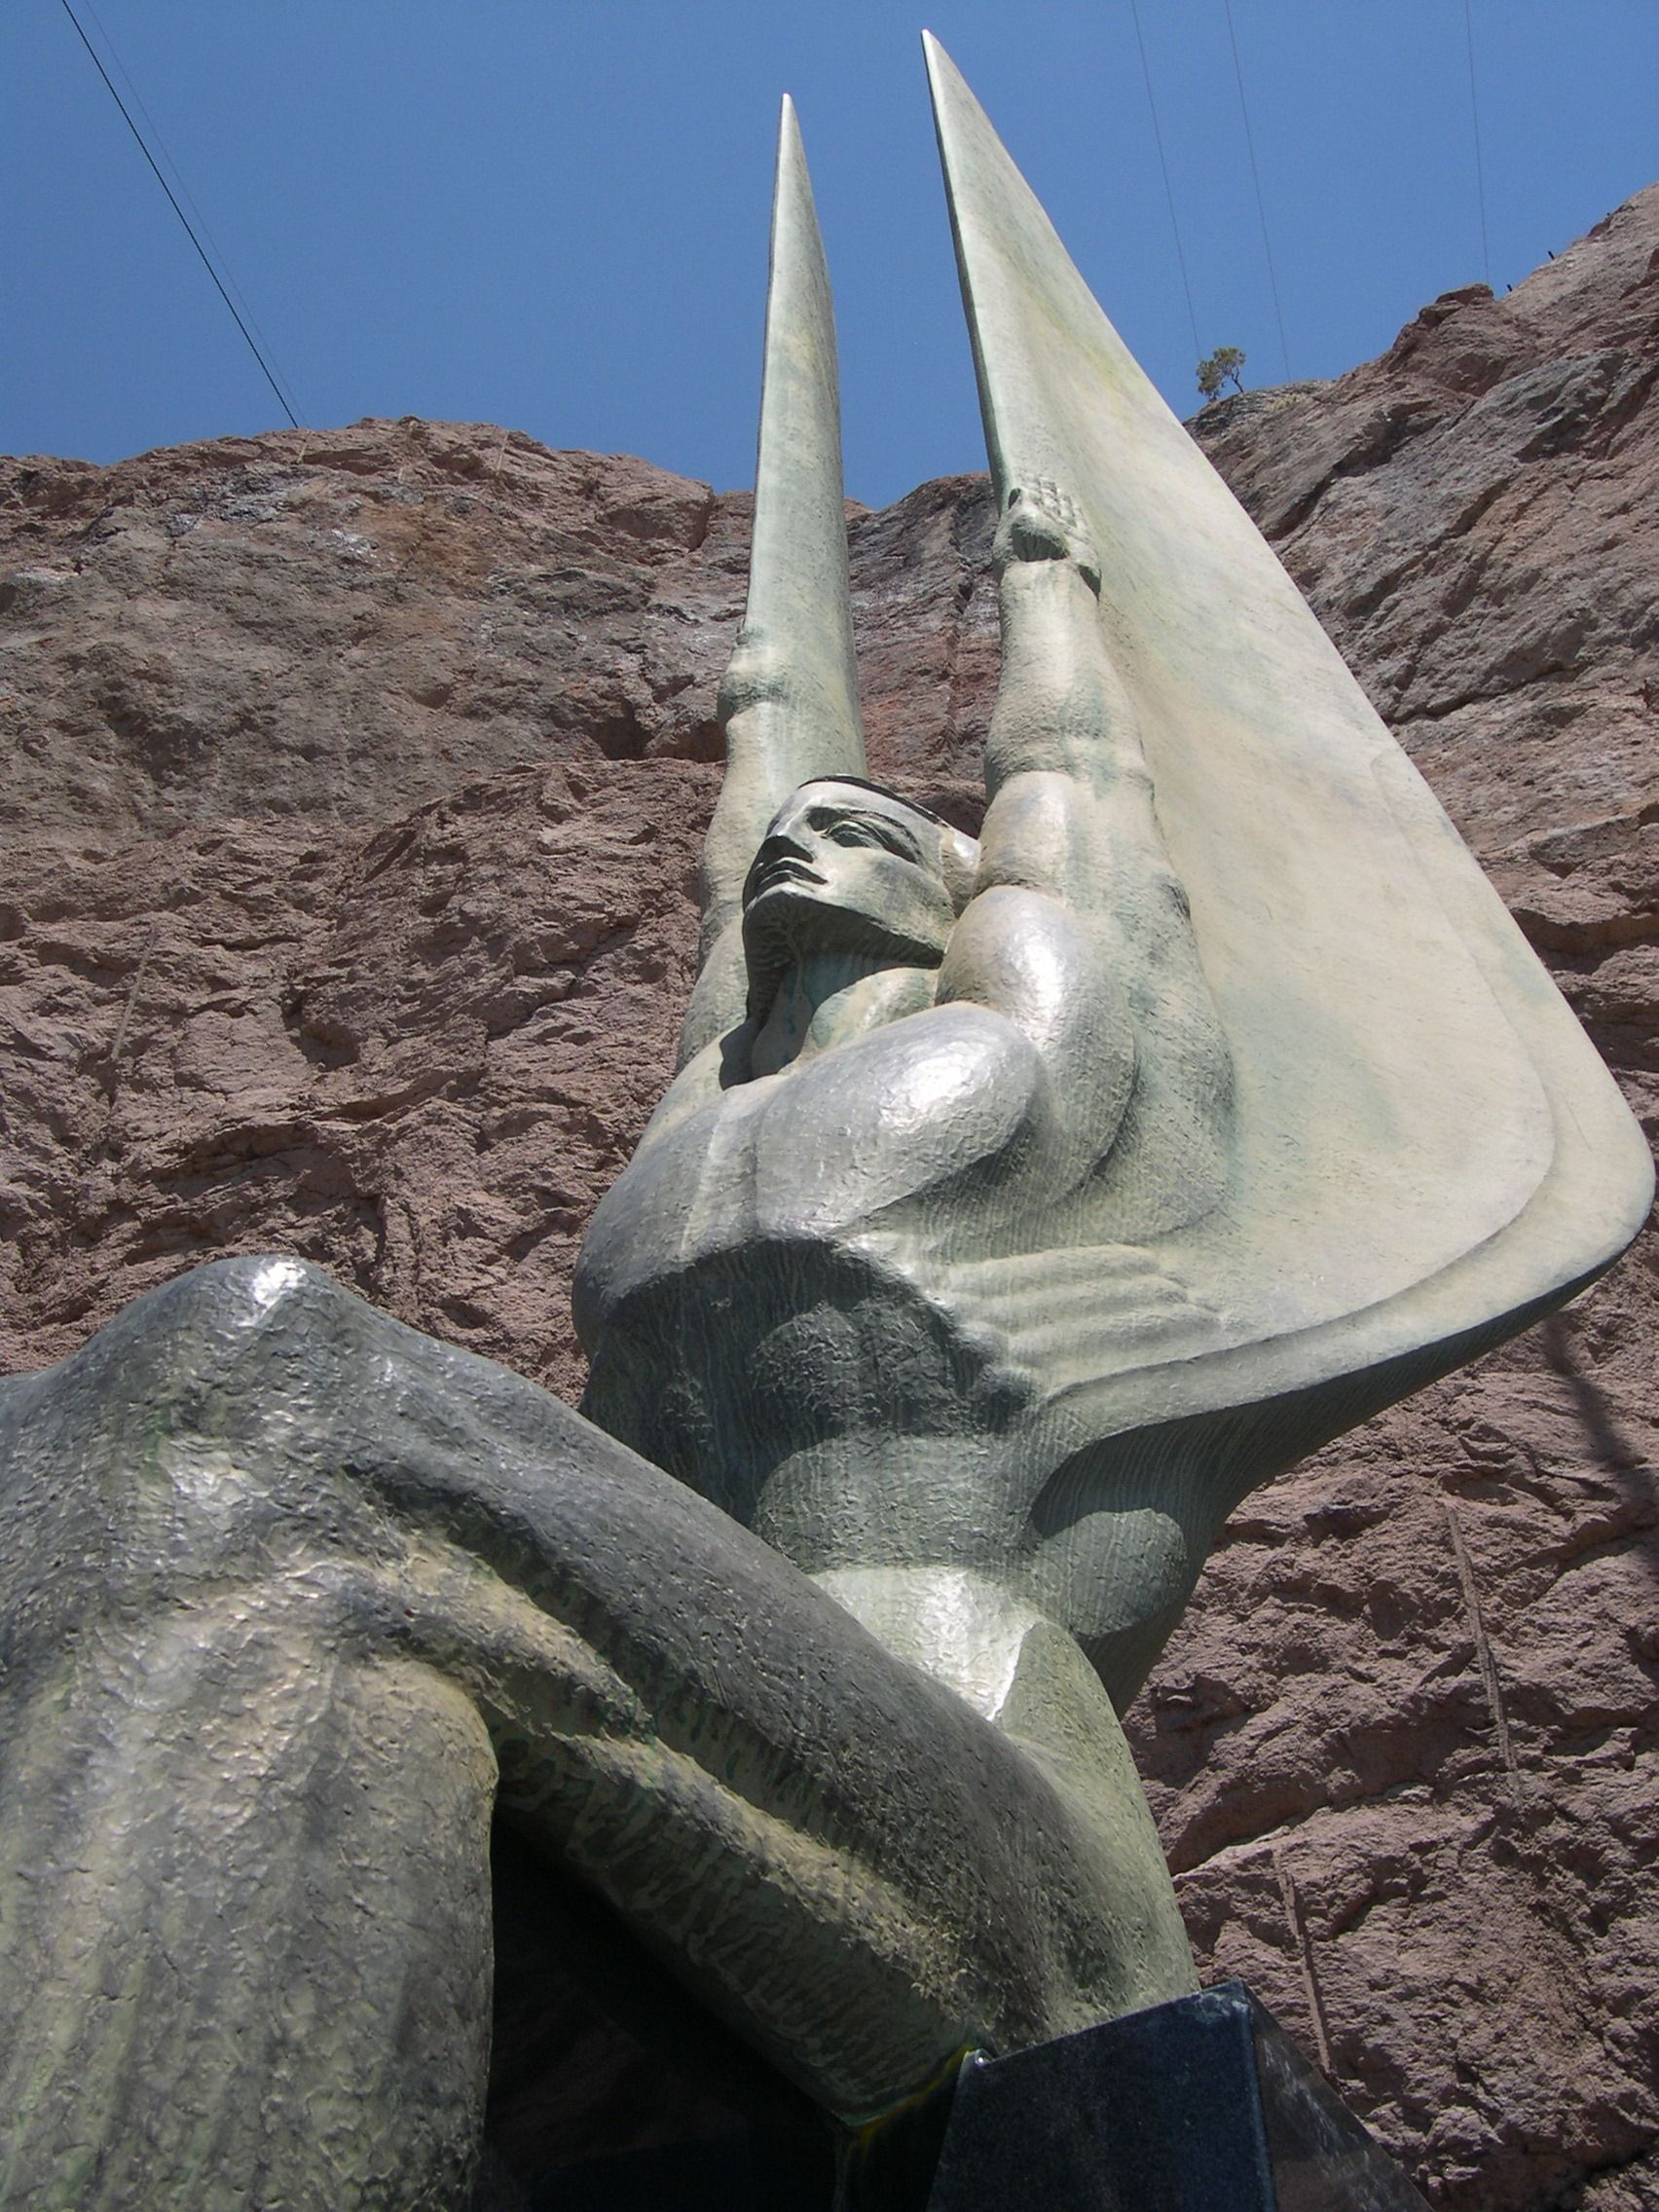 another view of the hoover dam art deco guardian angels angels pinterest hoover dam. Black Bedroom Furniture Sets. Home Design Ideas